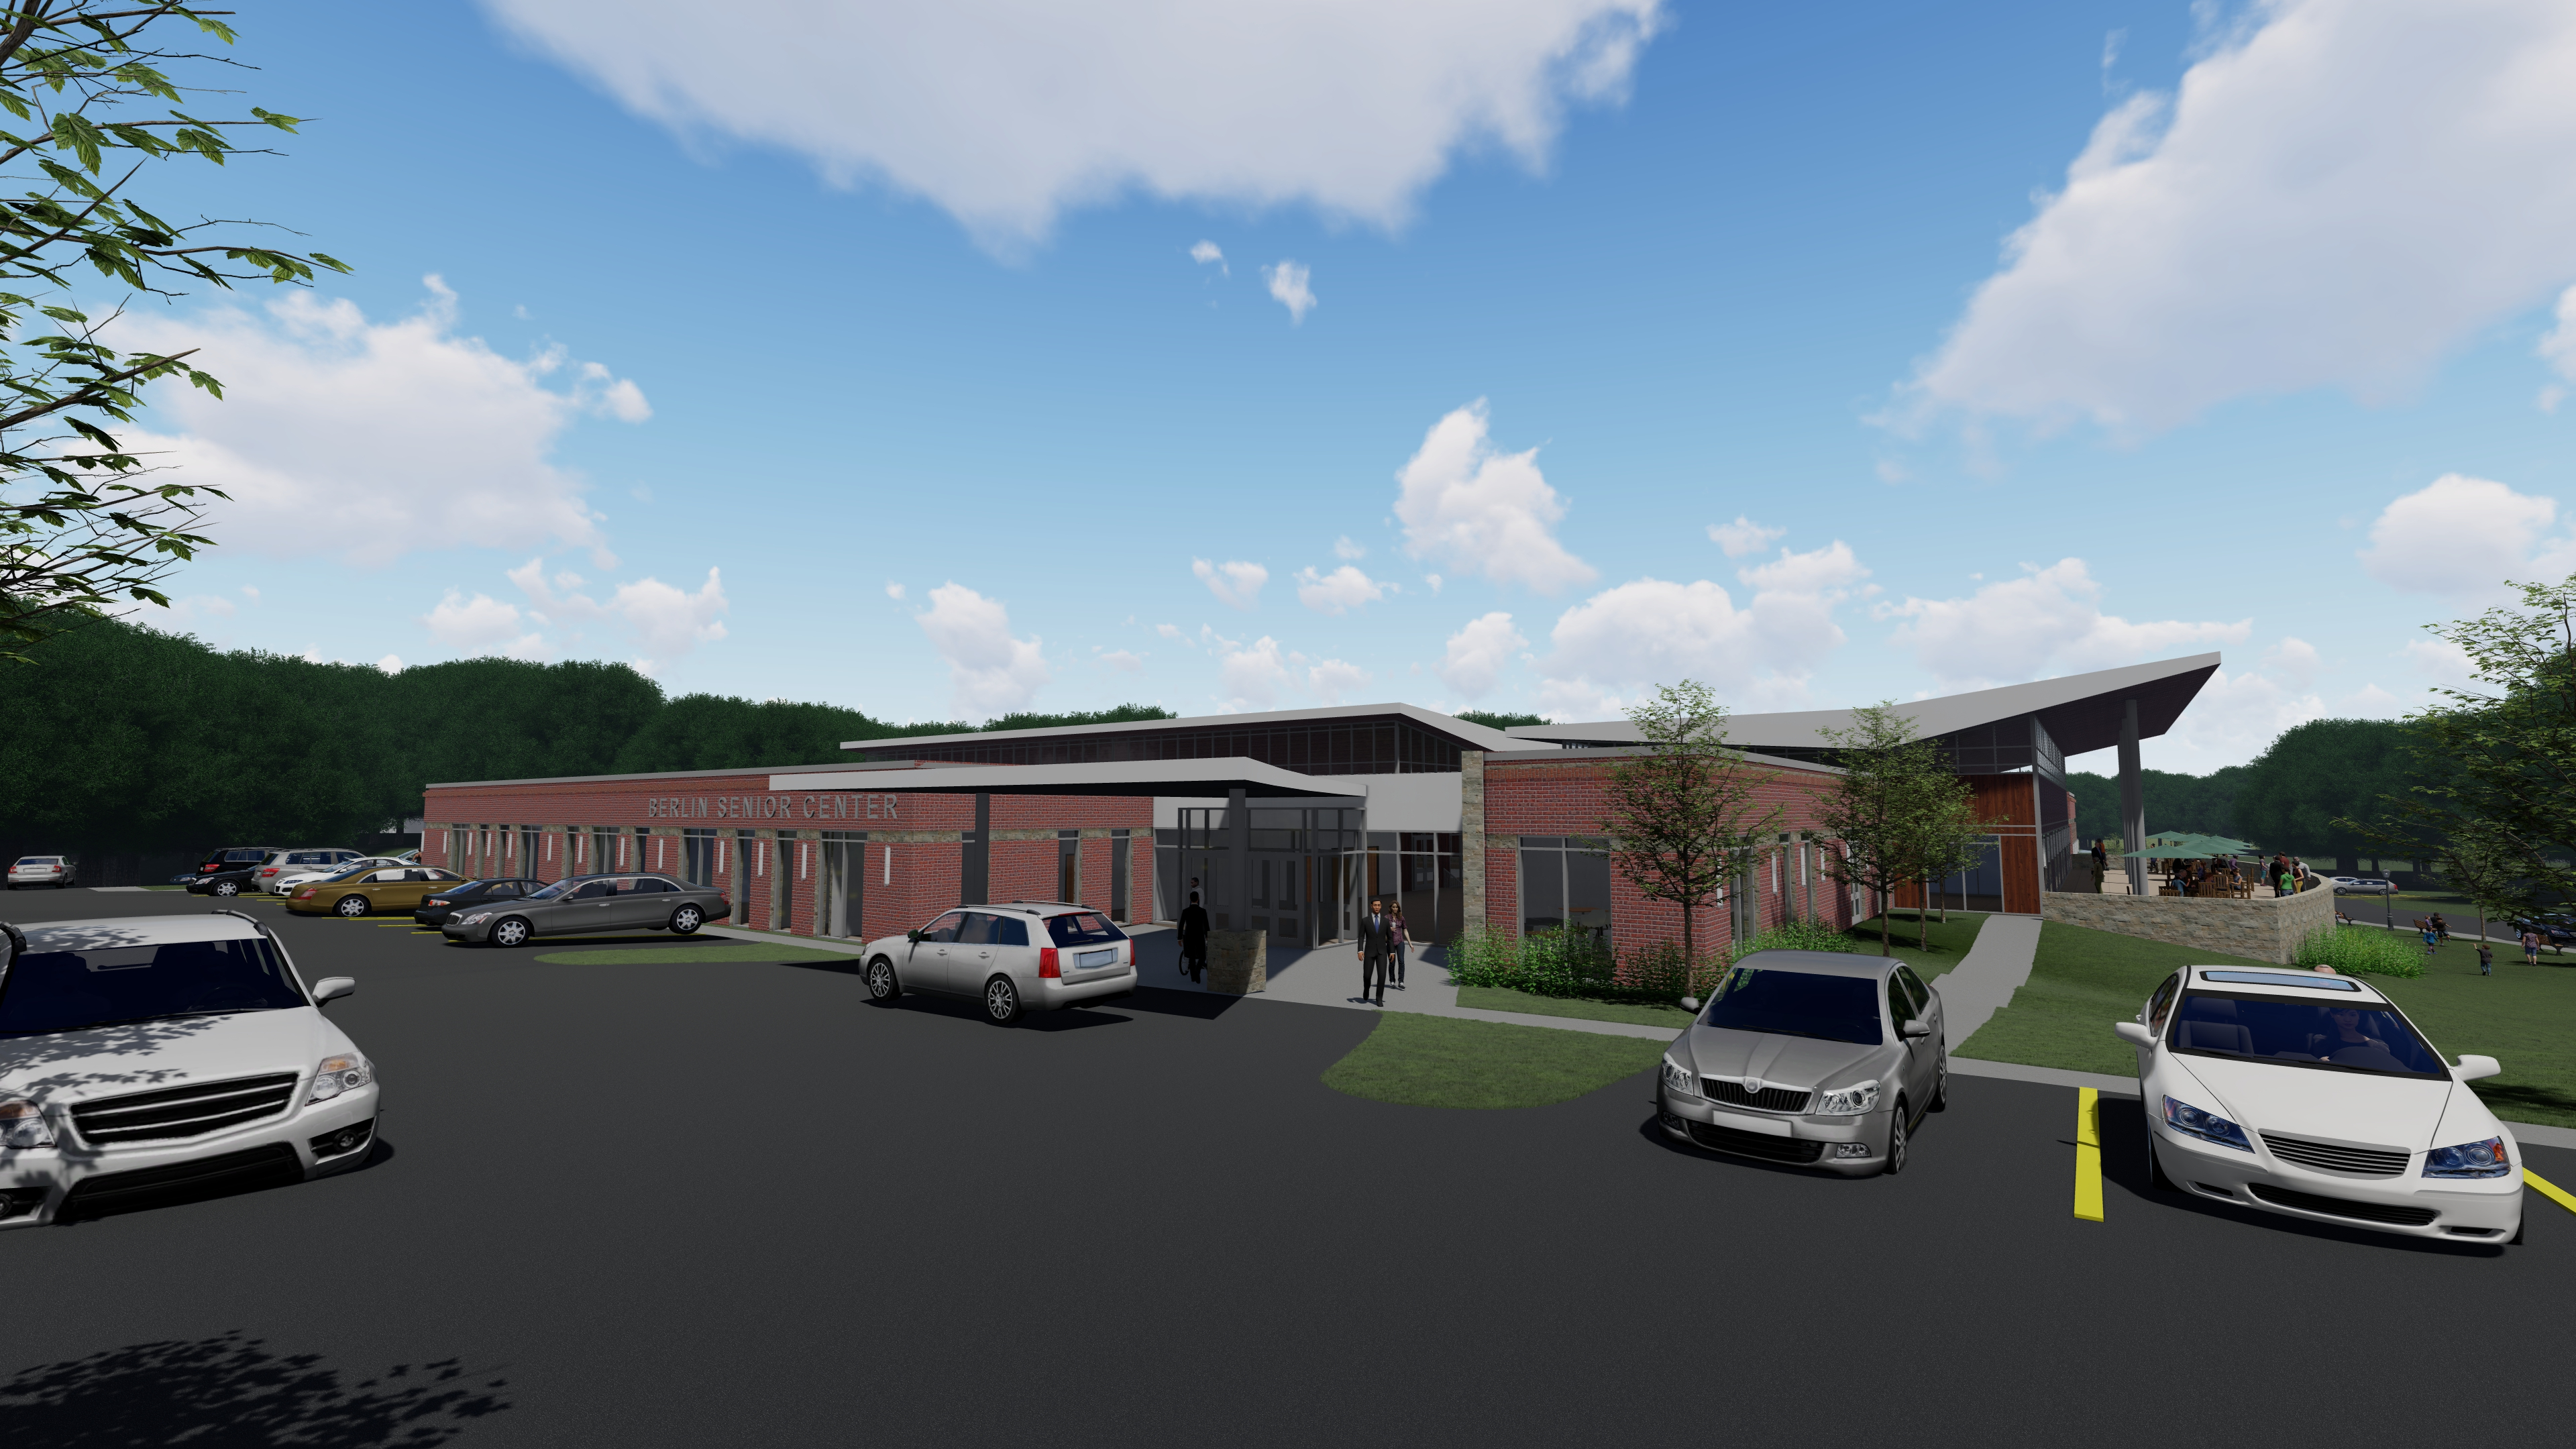 Design and Construction of the proposed Berlin Community and Senior Center